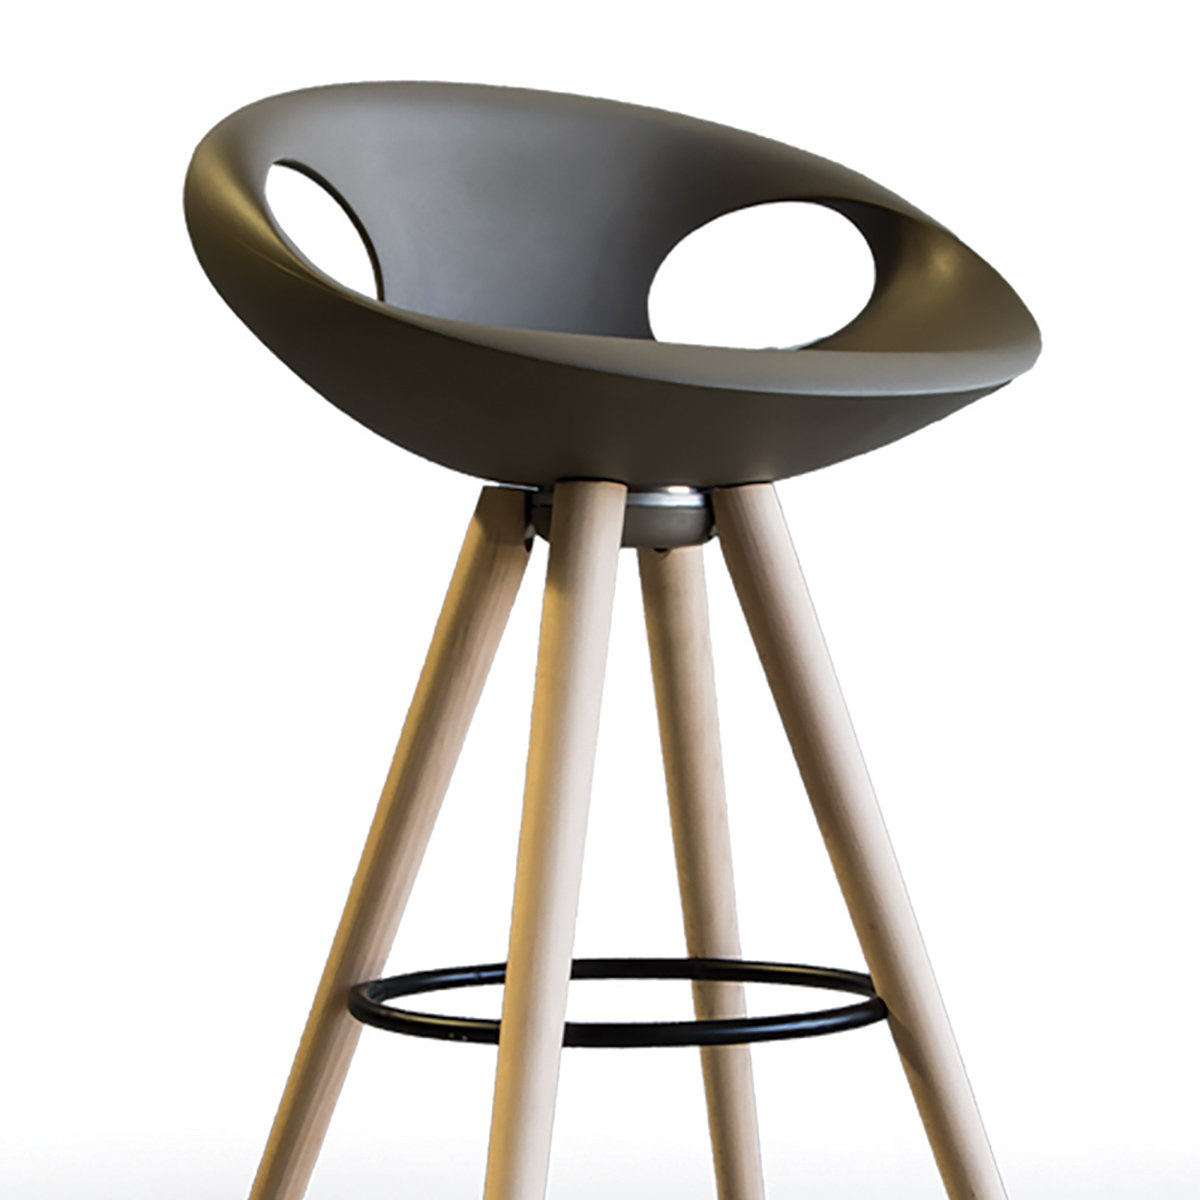 Sandler Seating Unveils New Up Stool